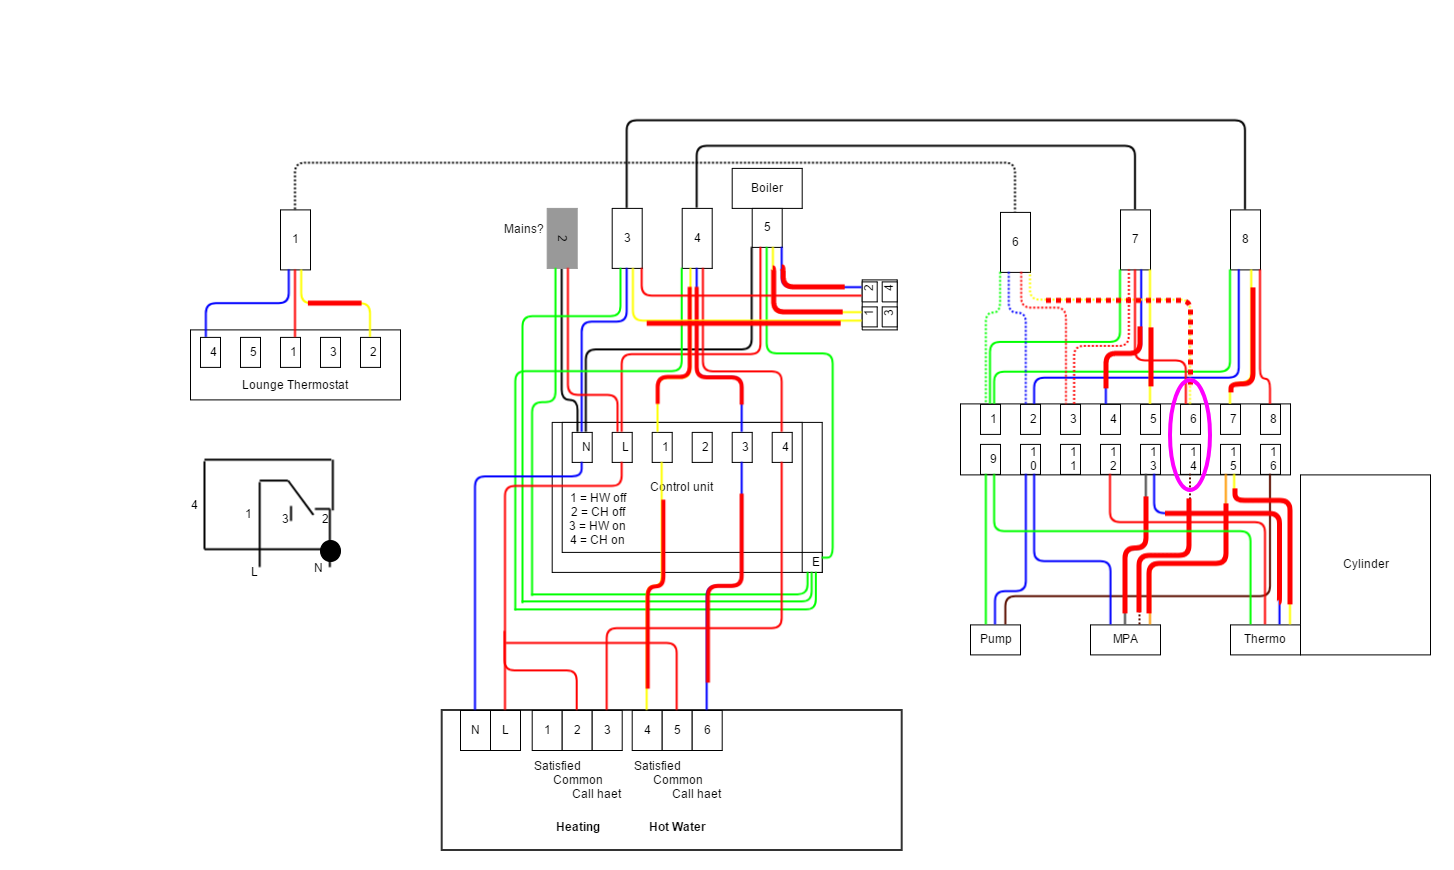 Central Heating Wiring Diagram Y Plan : Central heating wiring diagram y plan